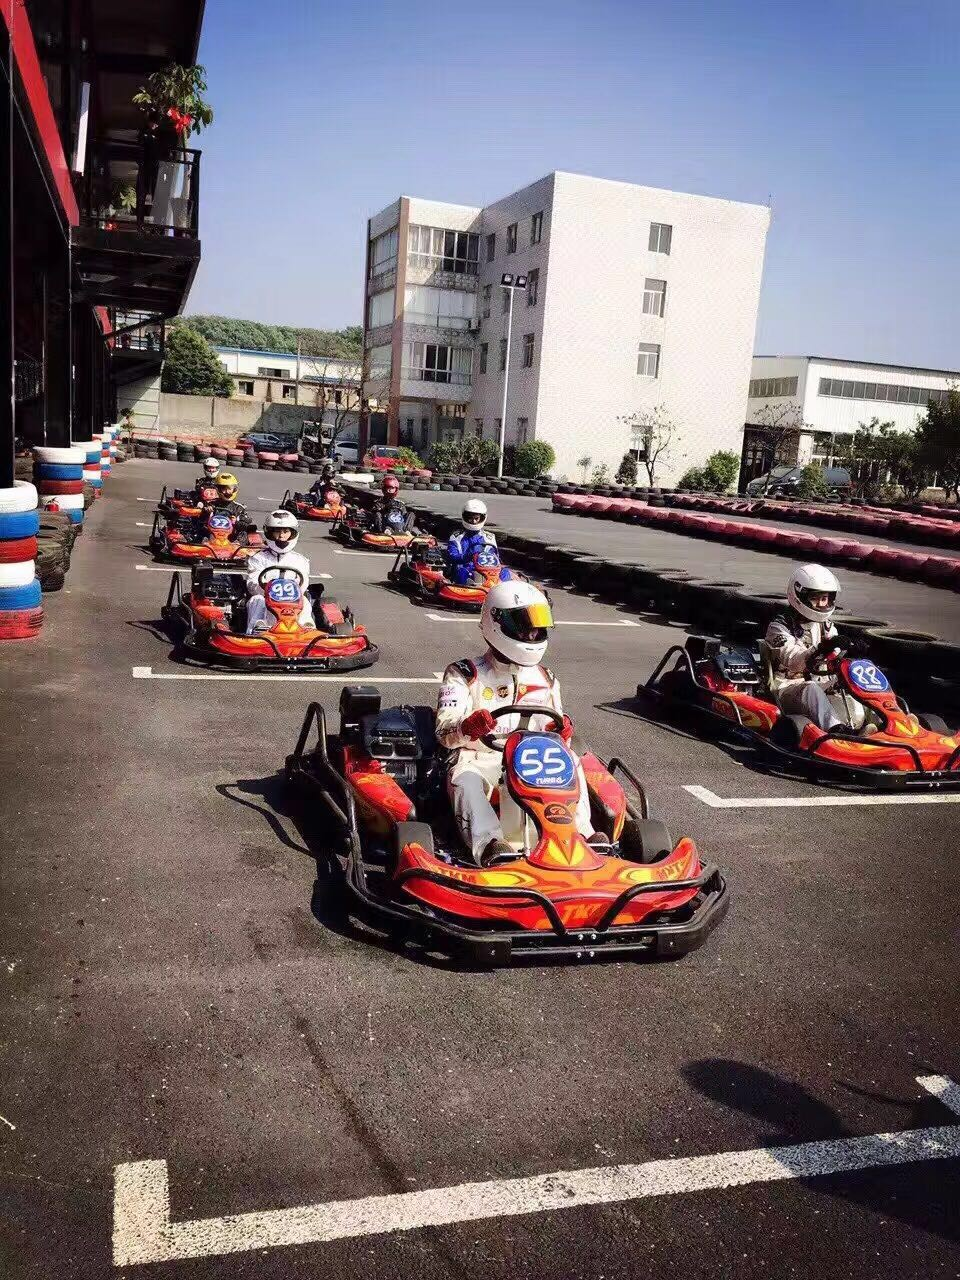 New Generation Adult Racing Go Kart/Karting Cars for Sale